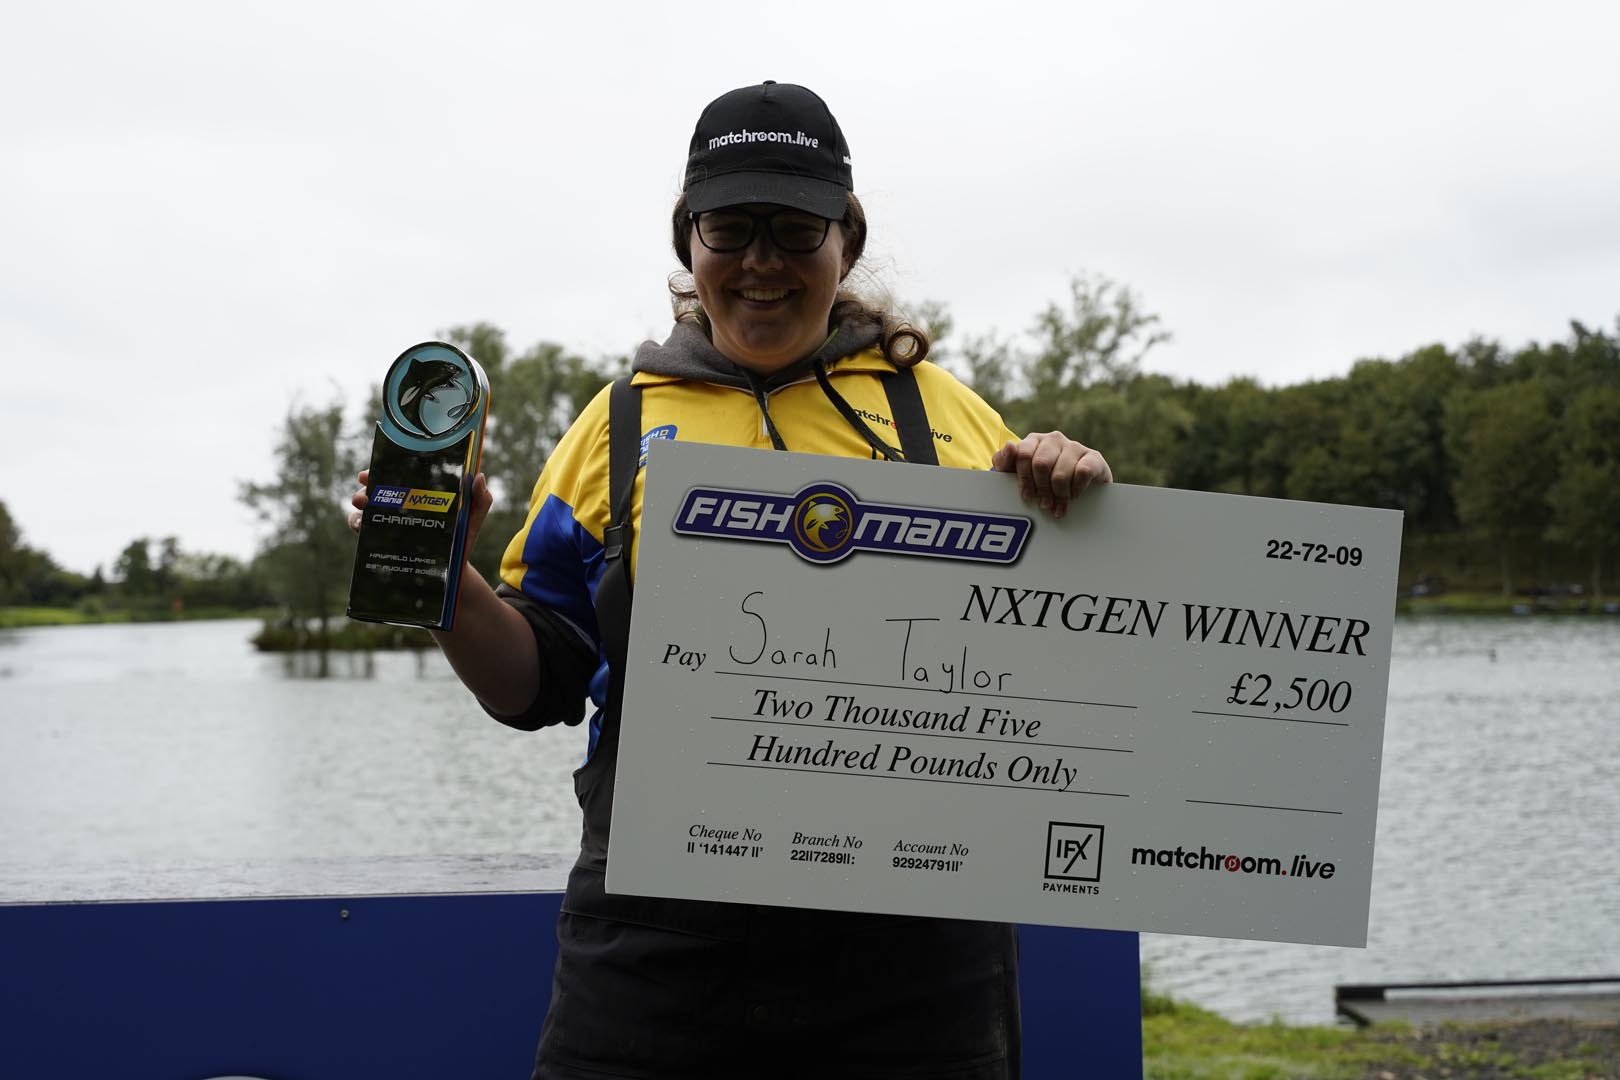 2020 Fish'O'Mania Ladies Winner: Sarah Taylor